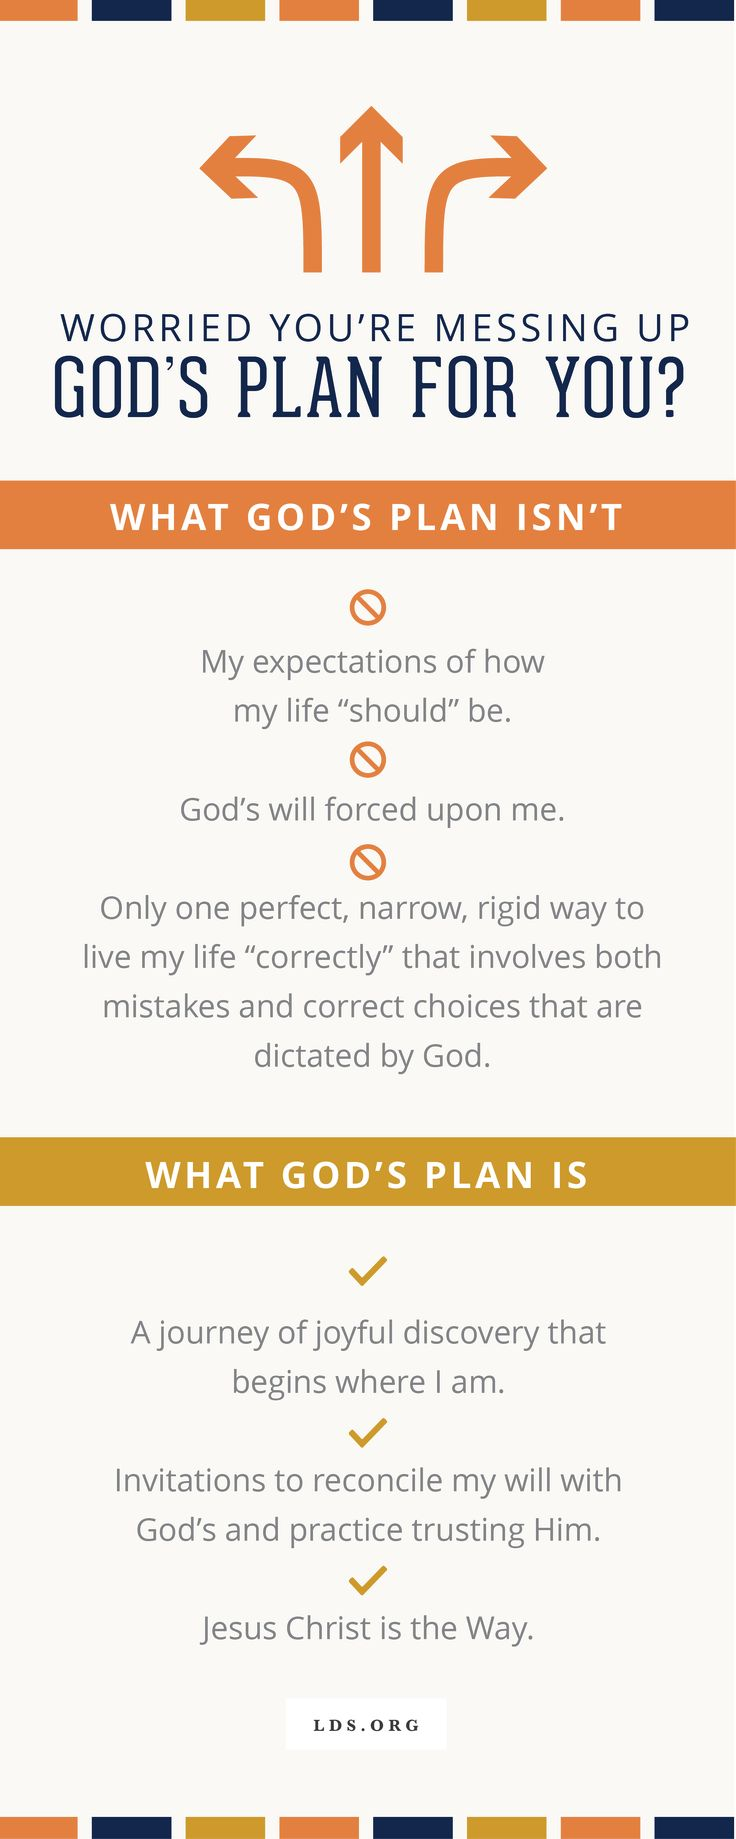 You're Not Messing Up God's Plan for You #LDS #Faith